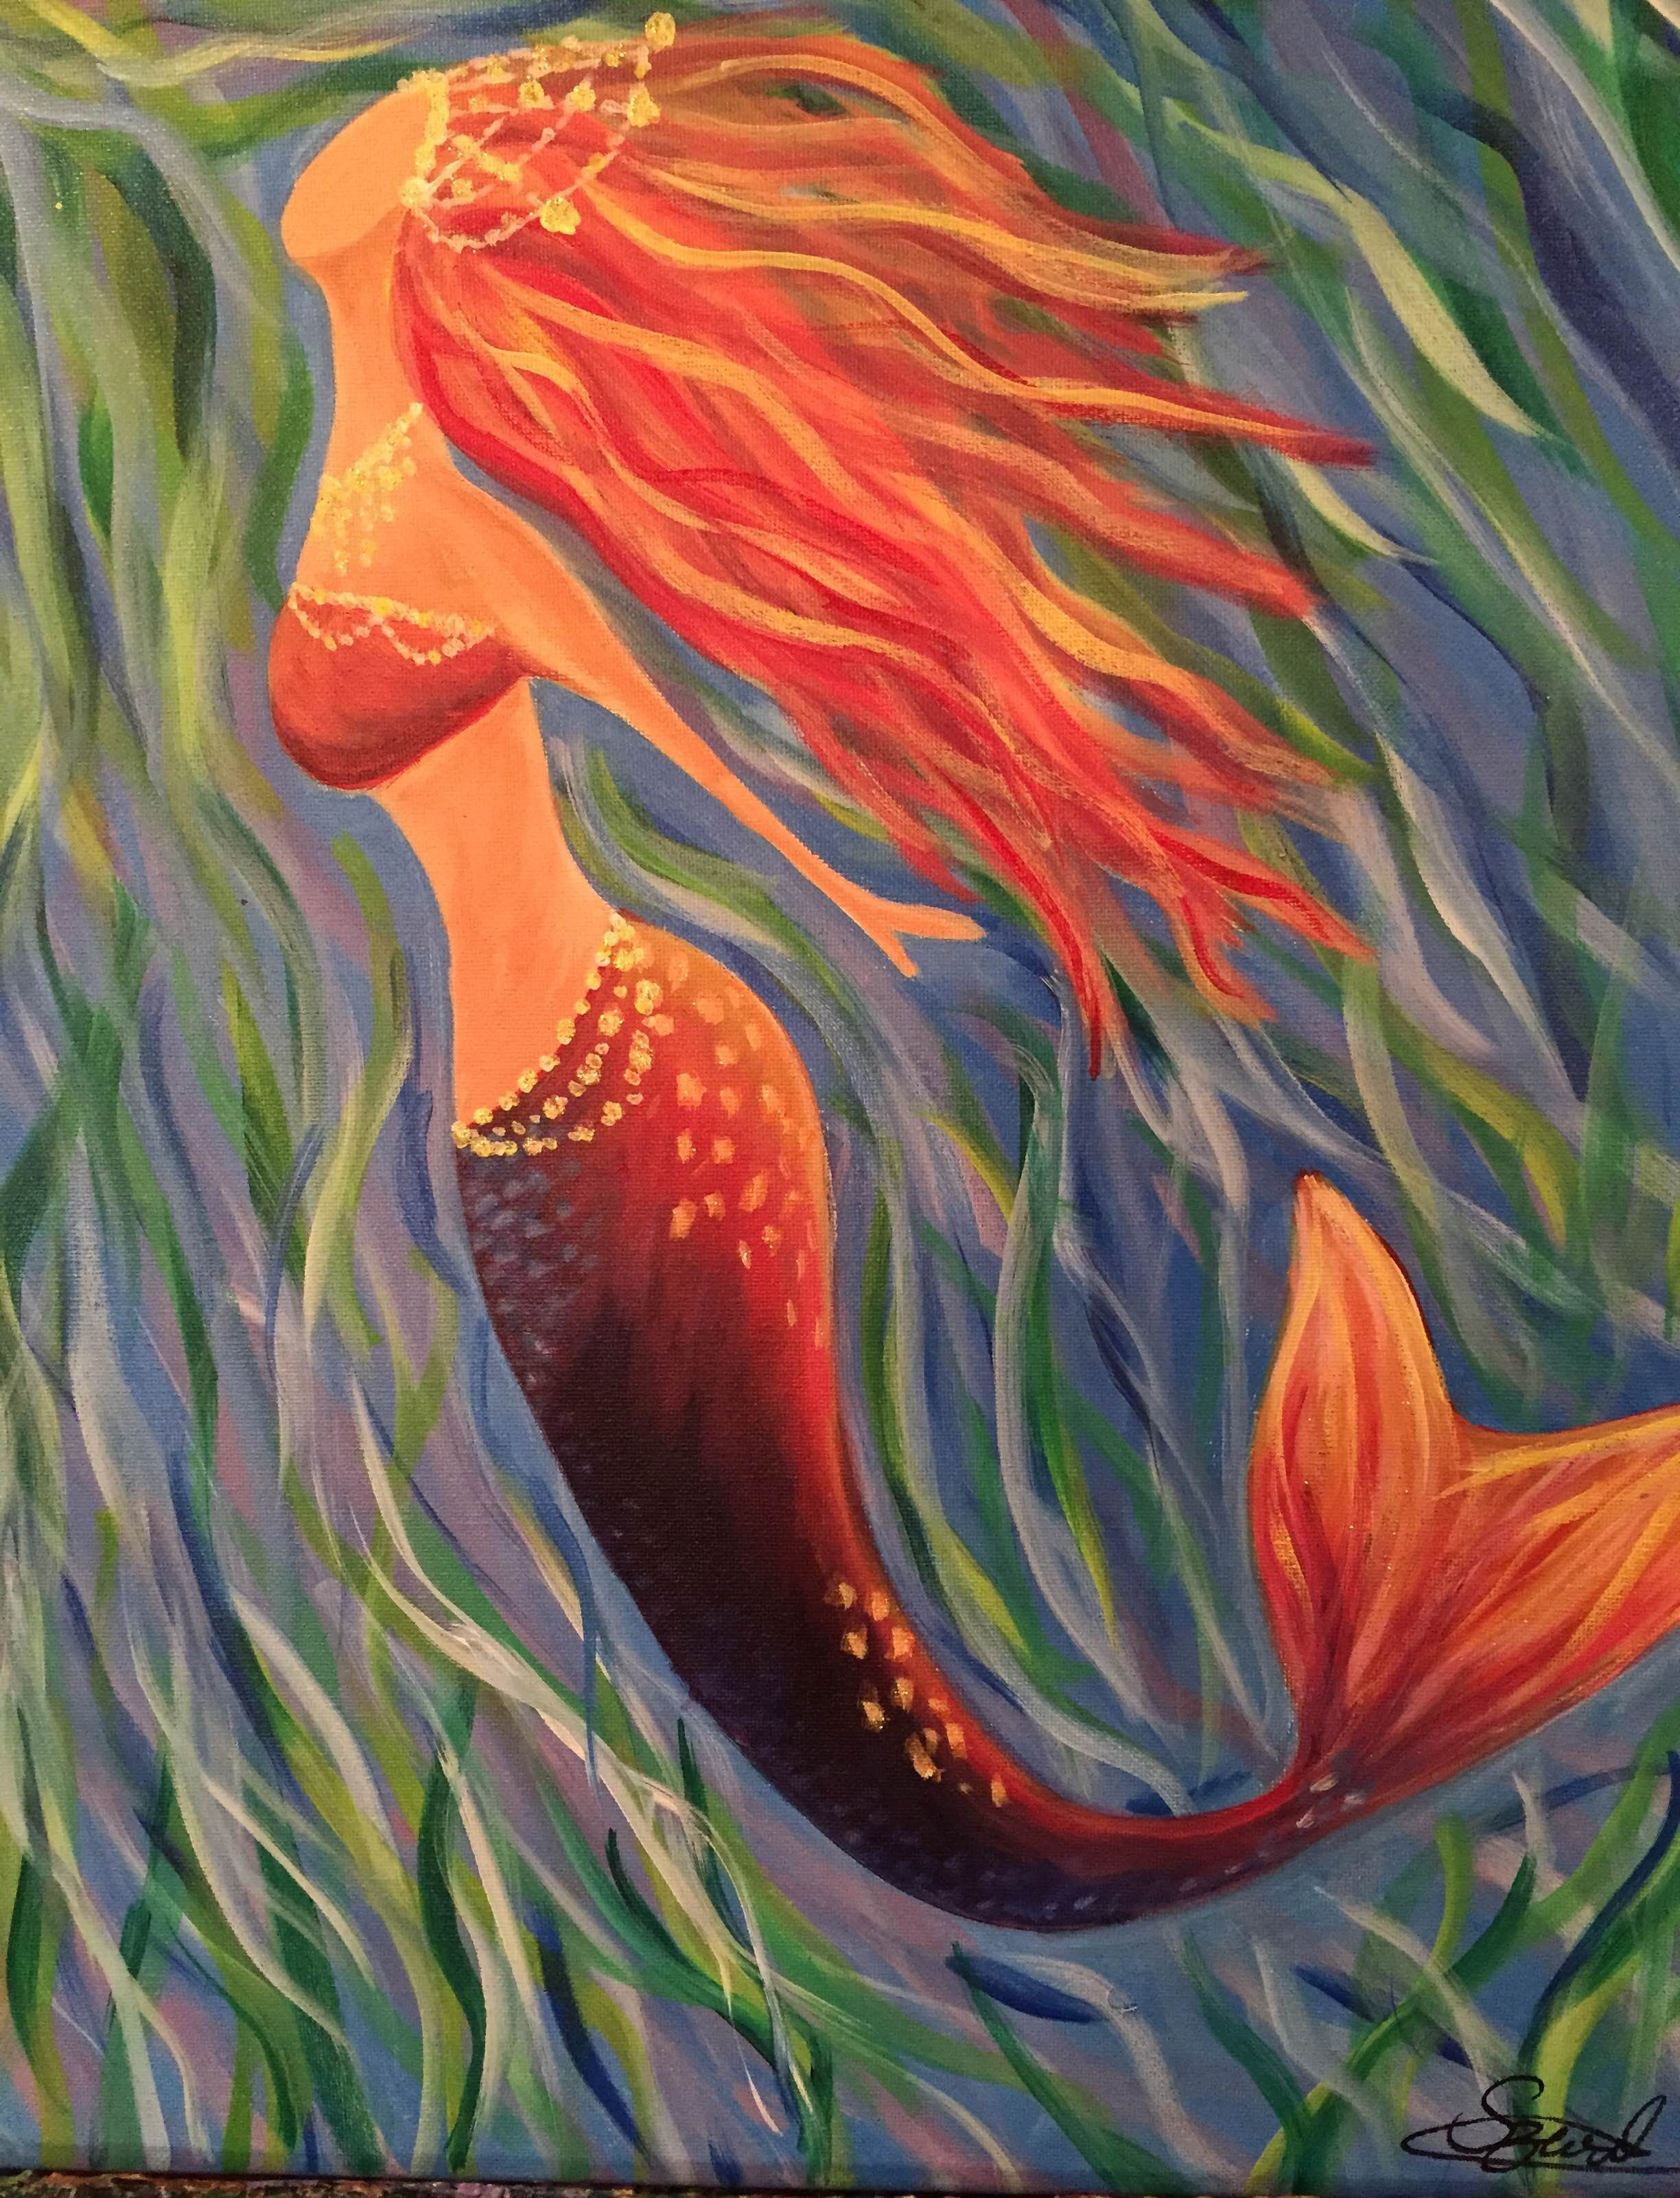 Paint Party Bluffton Sc Sip Paint Classes 843 501 2122 Wine Painting Painting Paint And Sip